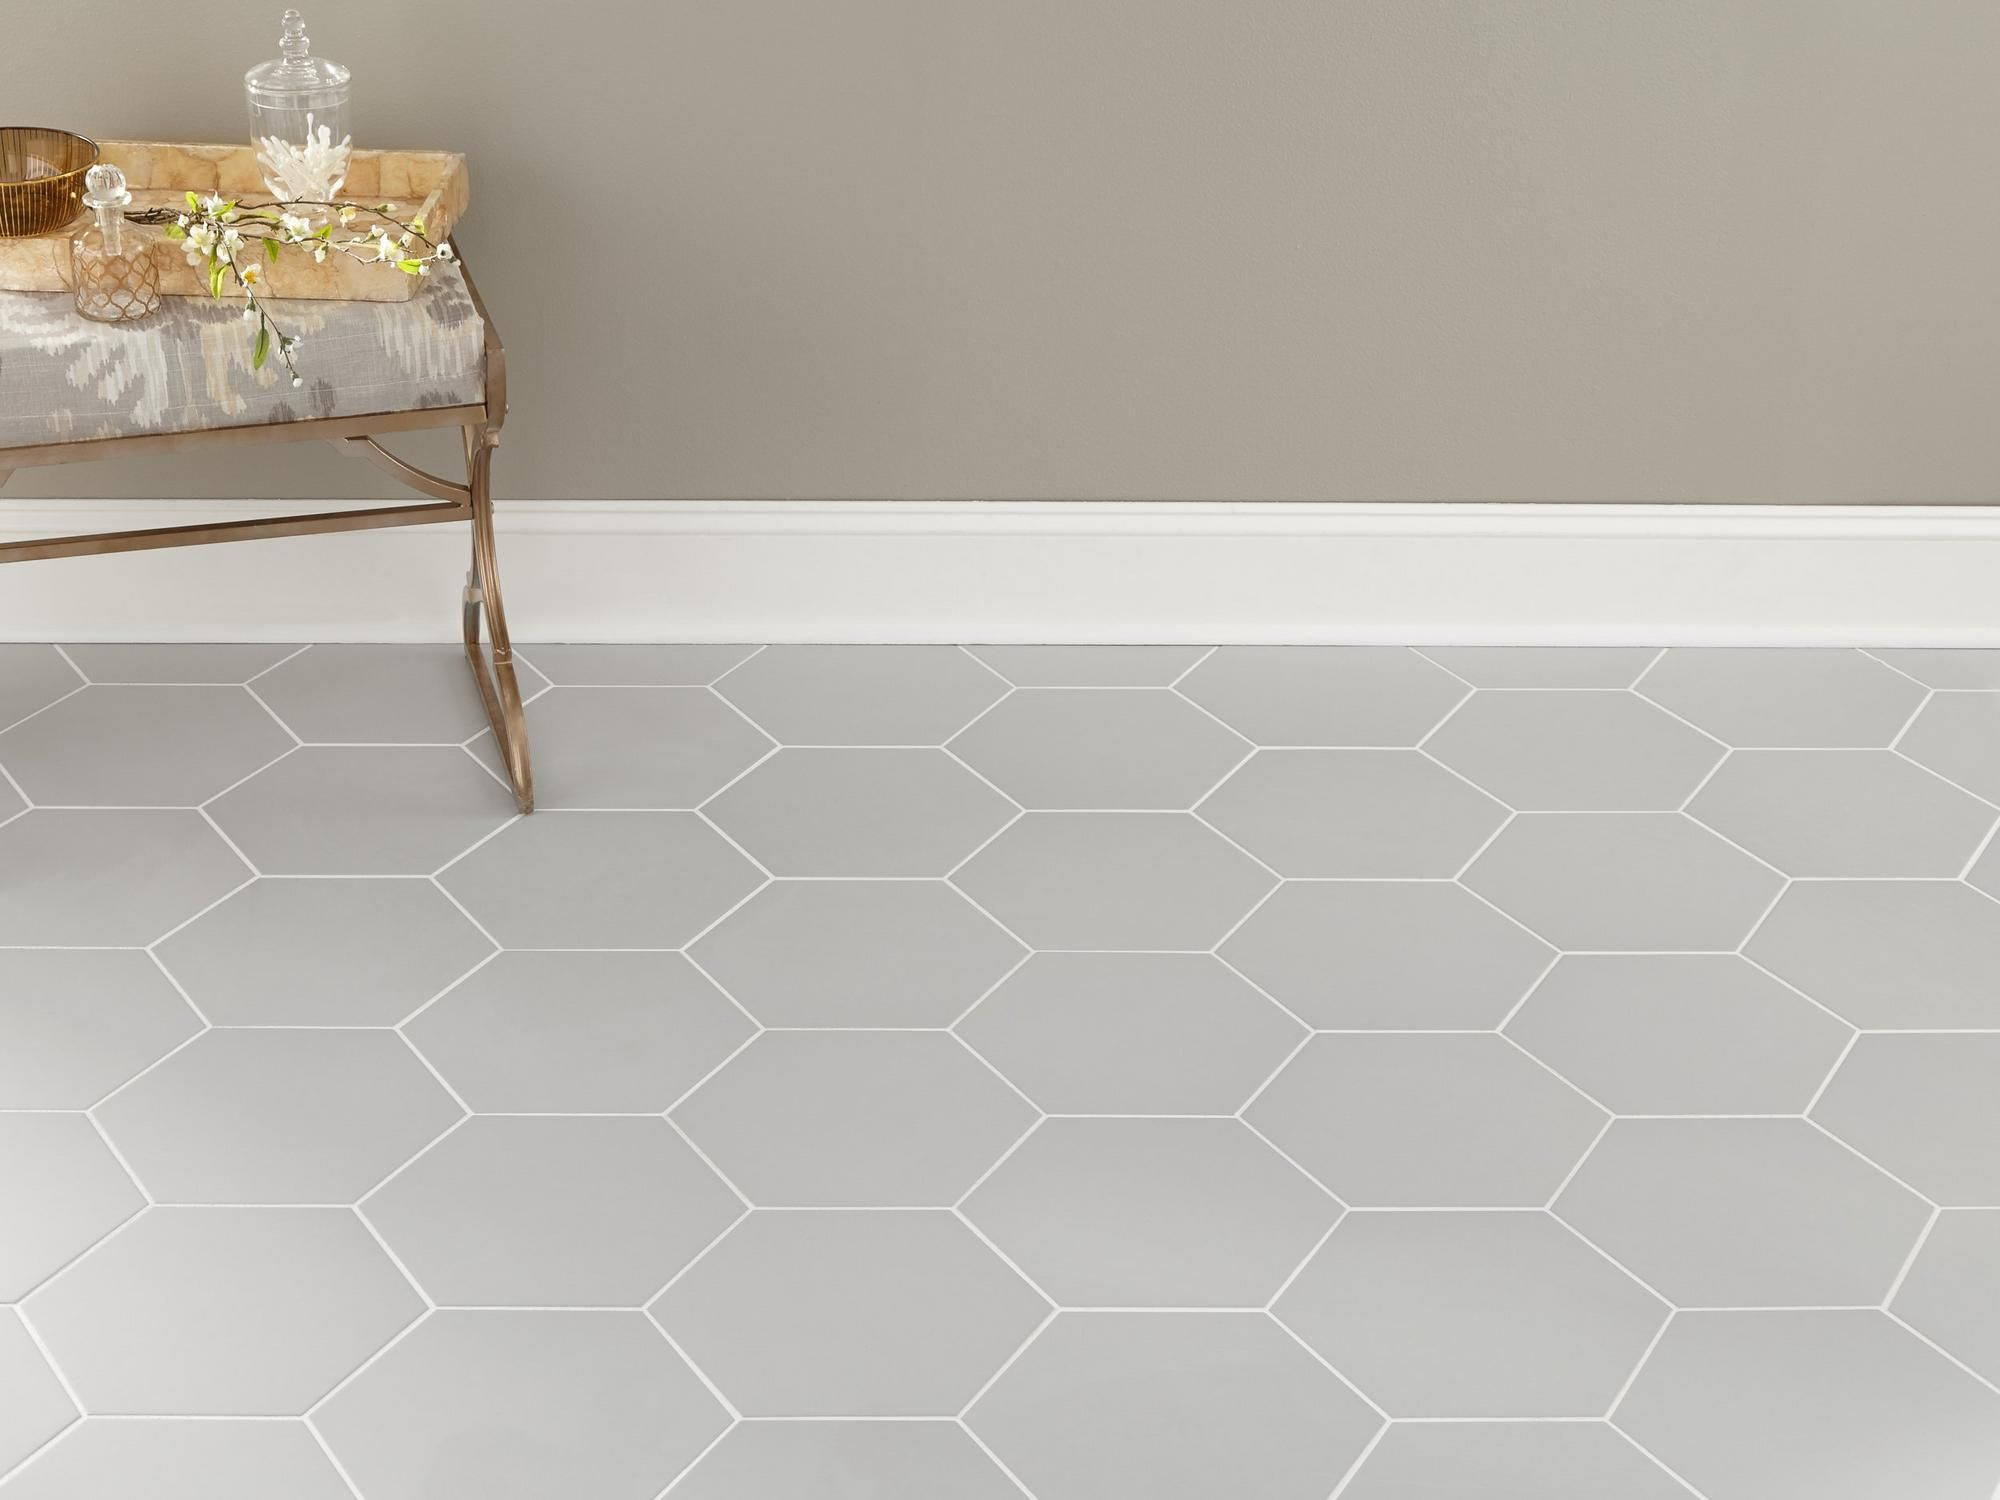 Opal Gray Hexagon Porcelain Tile In 2020 Honeycomb Tile Floor Hexagon Tile Bathroom Honeycomb Tiles Bathroom